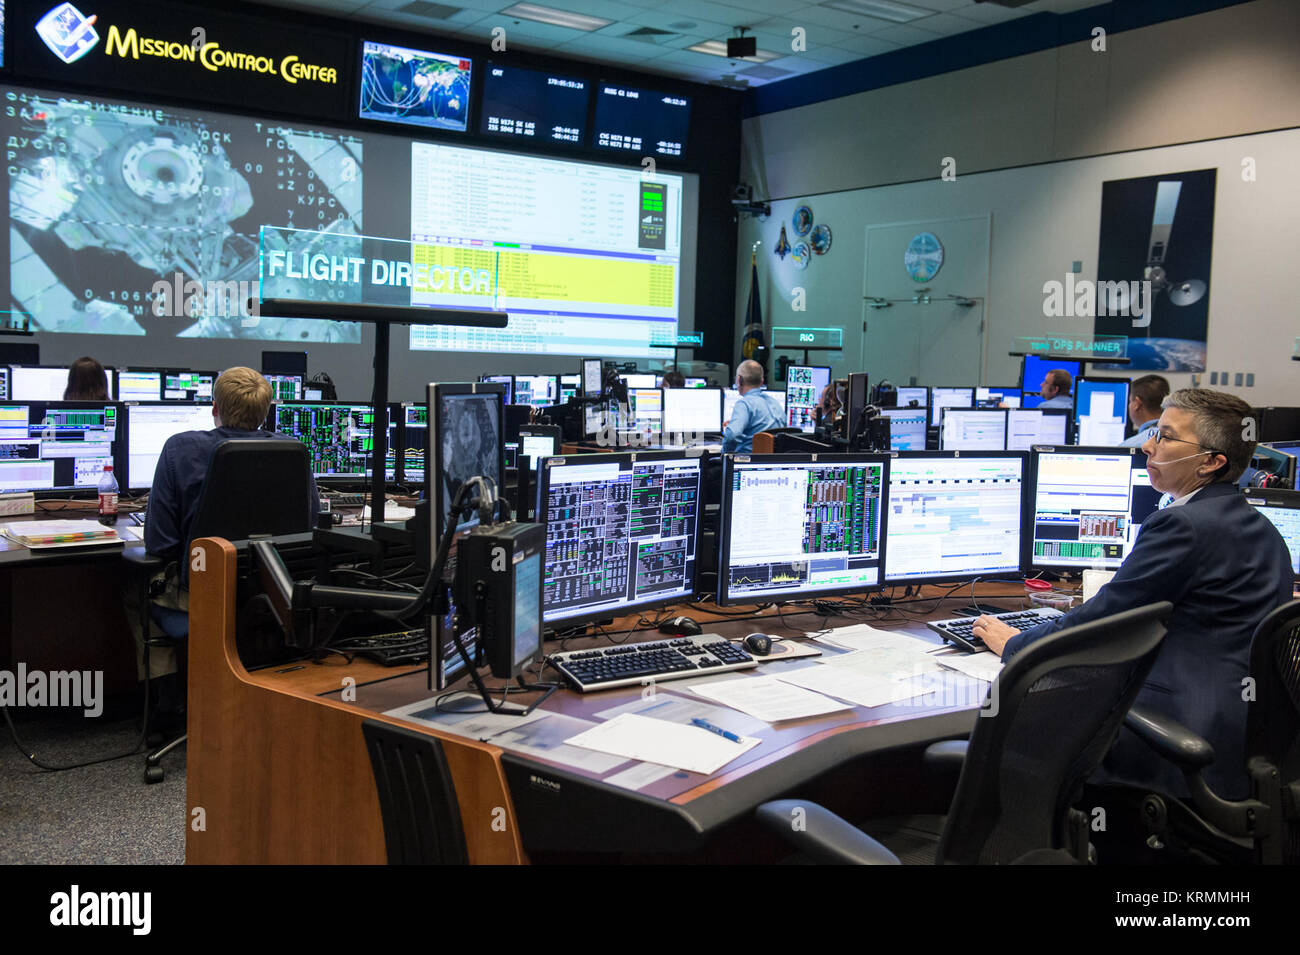 DATE: 6-18-16 LOCATION: Bldg. 30, WFCR SUBJECT: Expedition 47 flight controllers during undocking of the Soyuz TMA - Stock Image